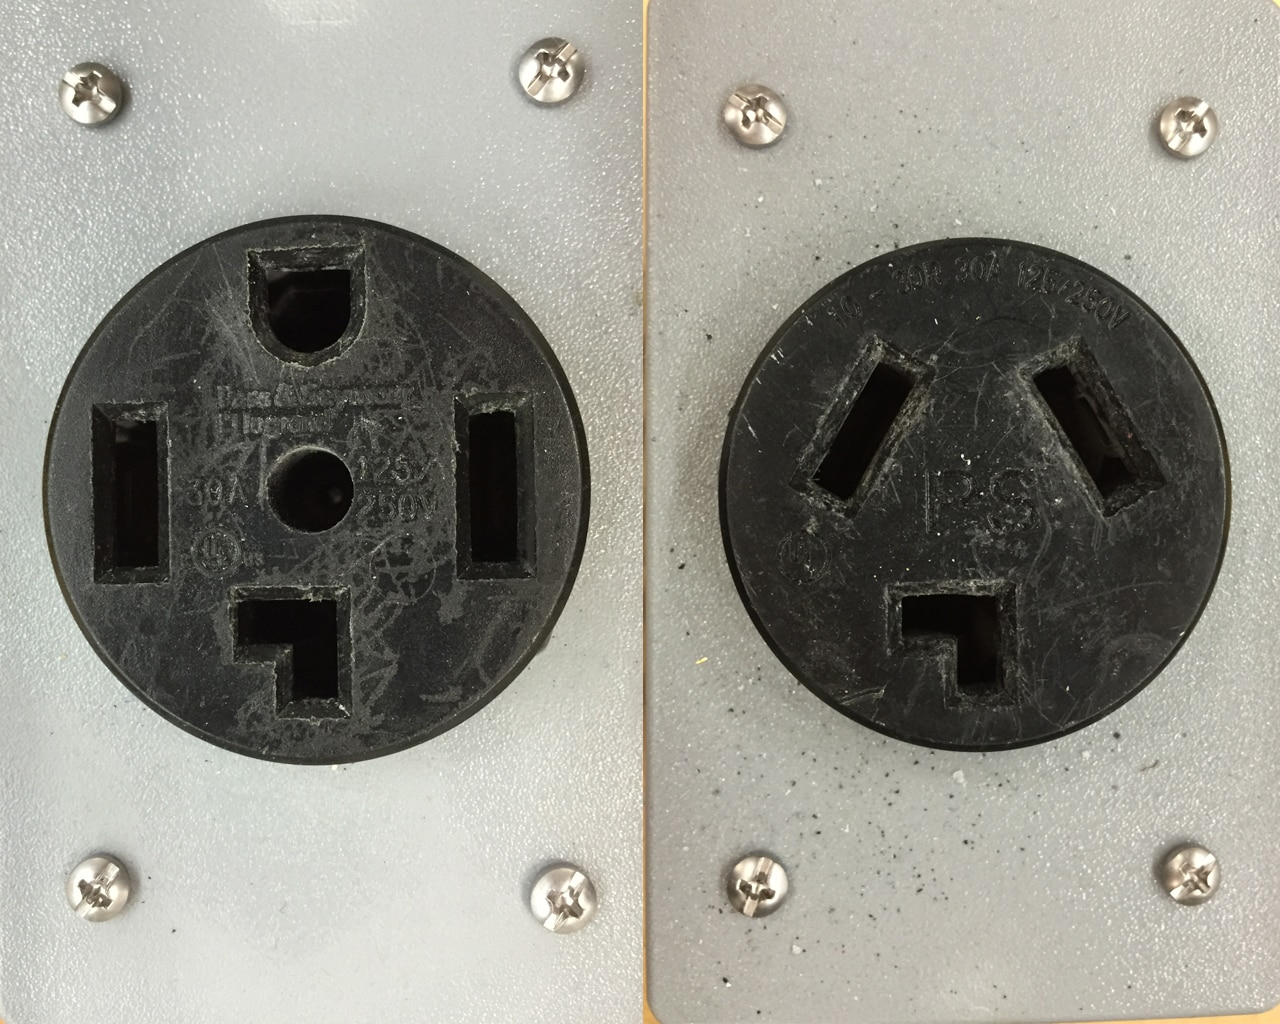 3 Prong Vs 4 Dryer Outlets Whats The Difference Freds Wiring An Outlet Without Ground Appliance